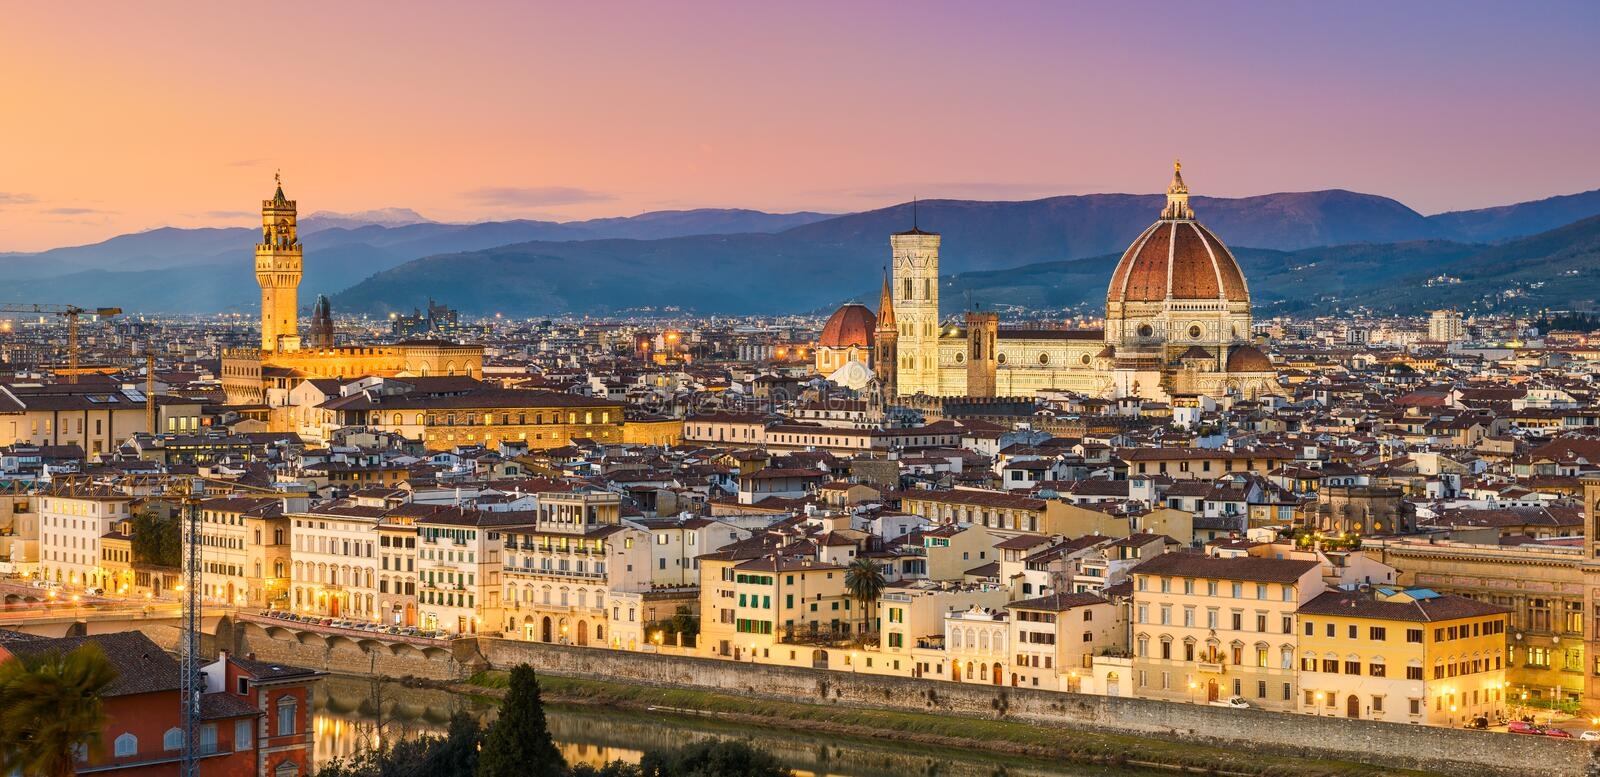 Skyline of Florence, Italy royalty free stock photography